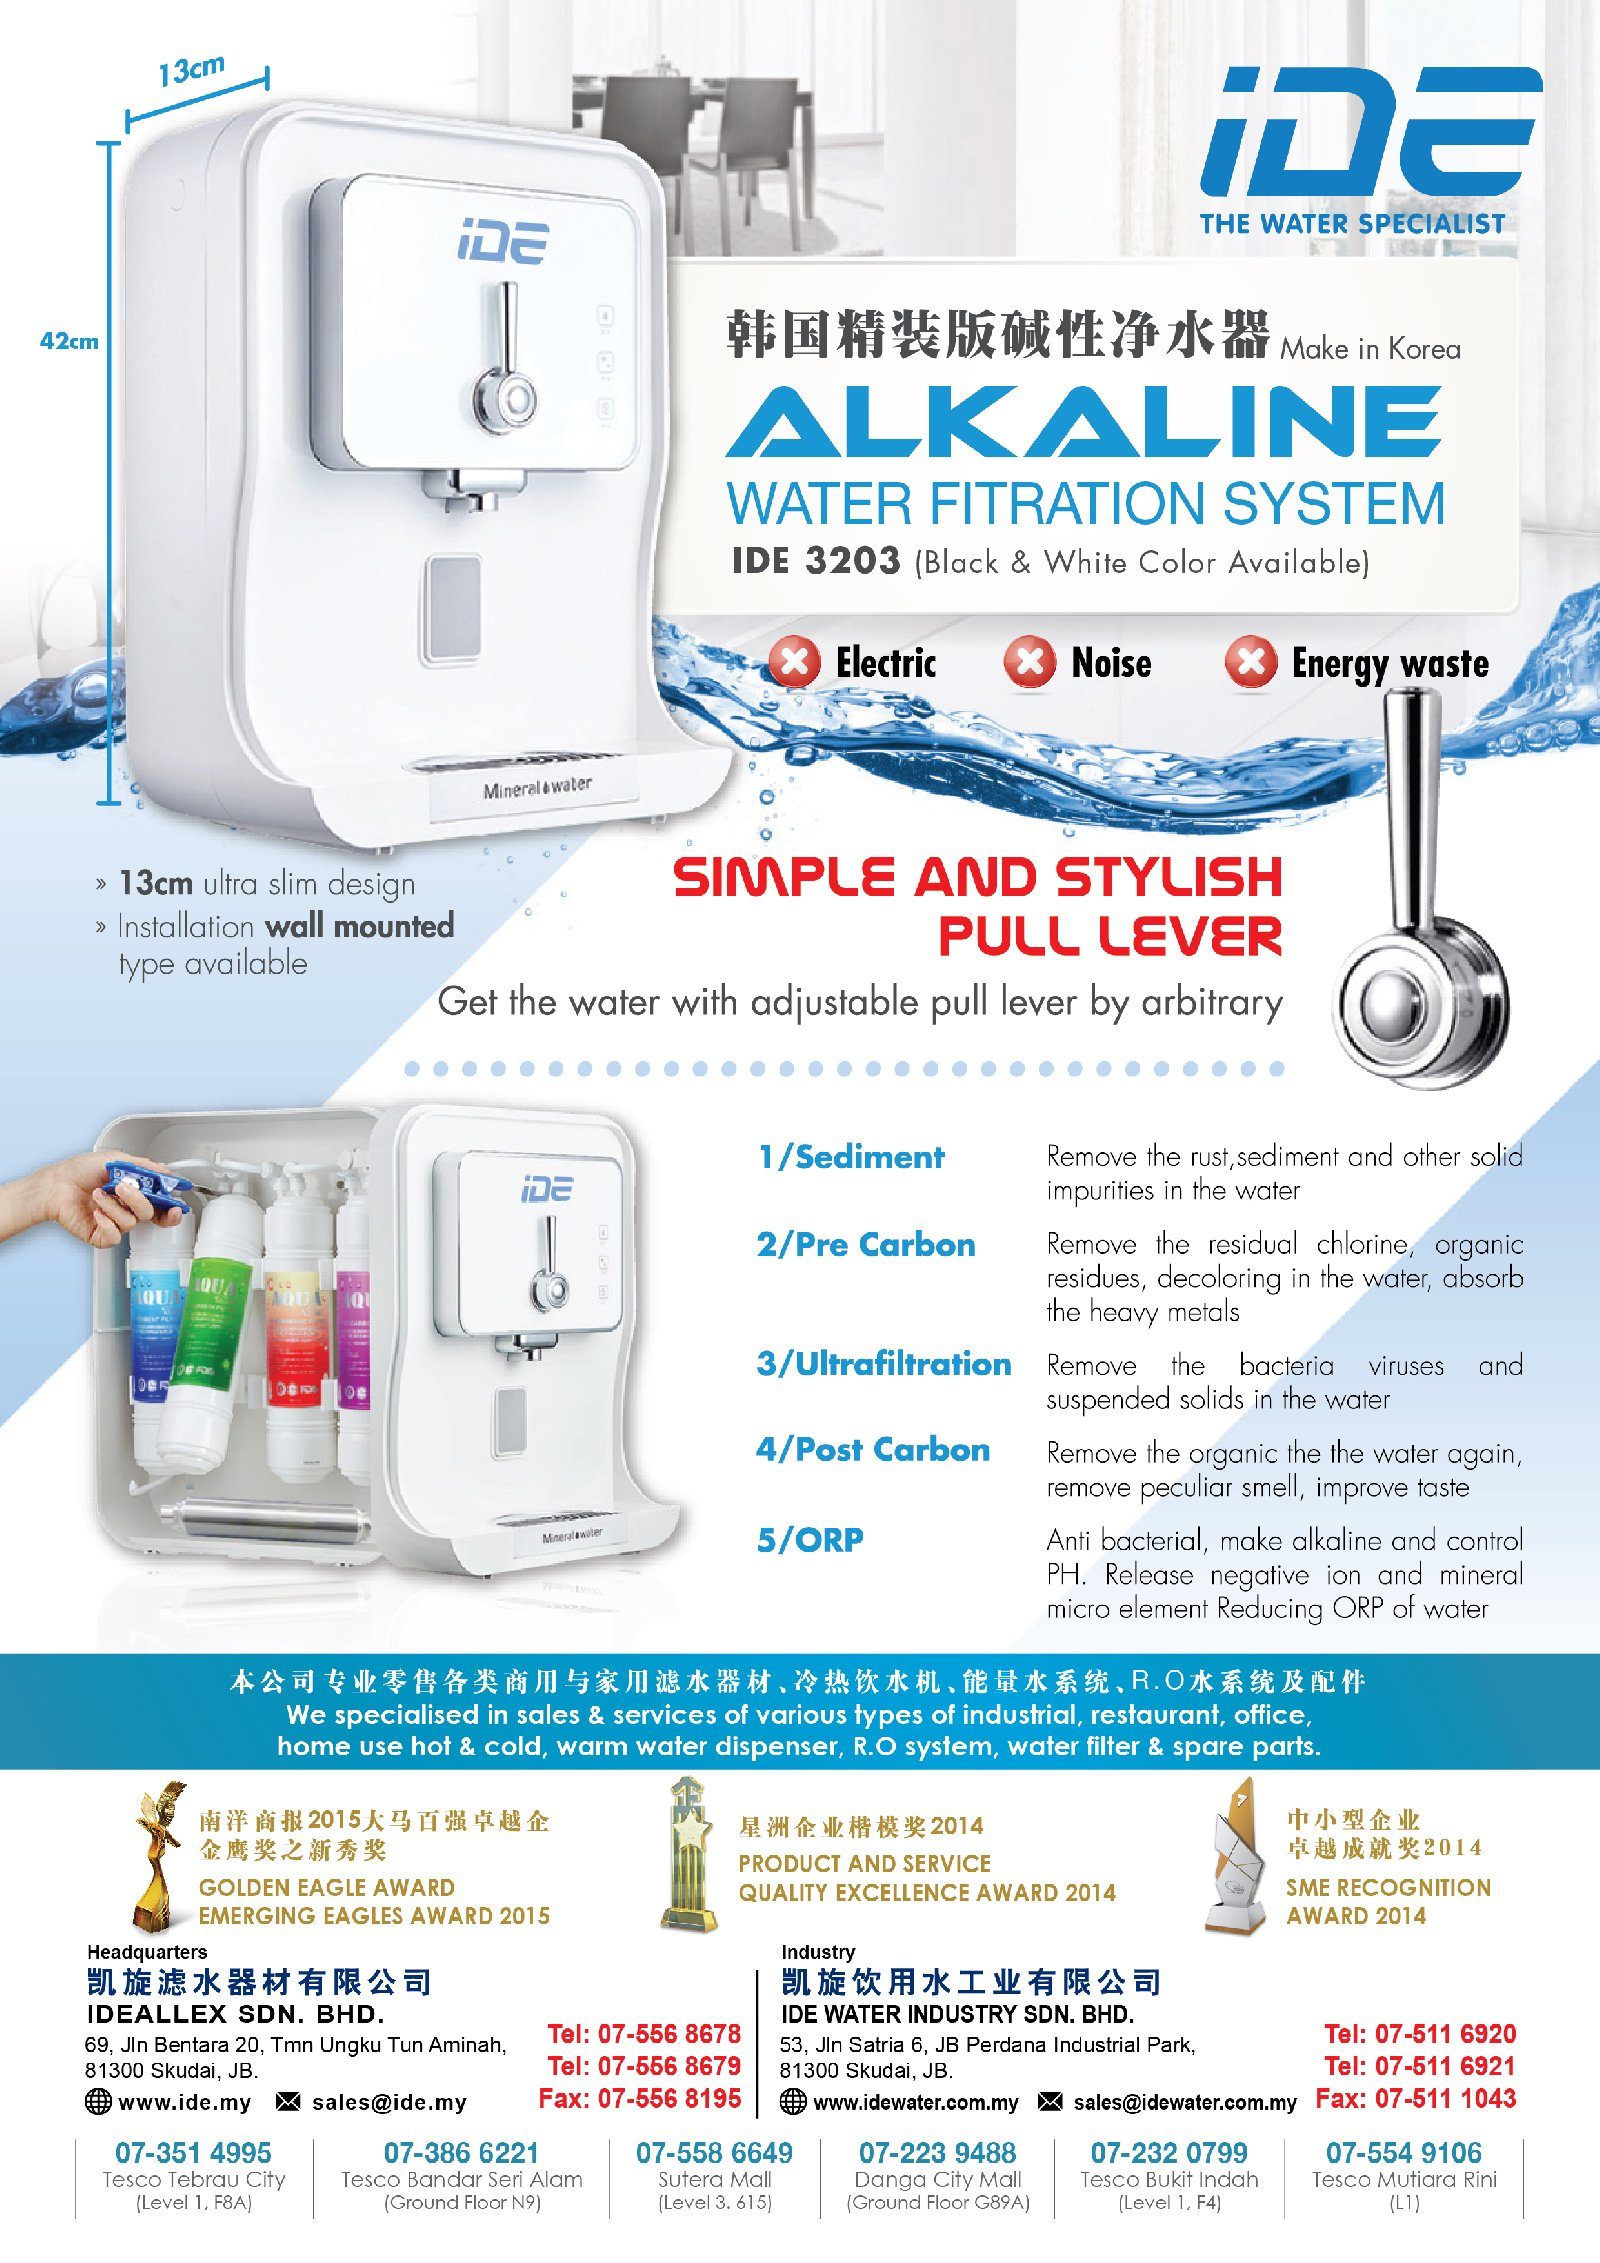 IDE Groups One Stop Water Station 2016 CNY promotion Alkaline Water dispenser